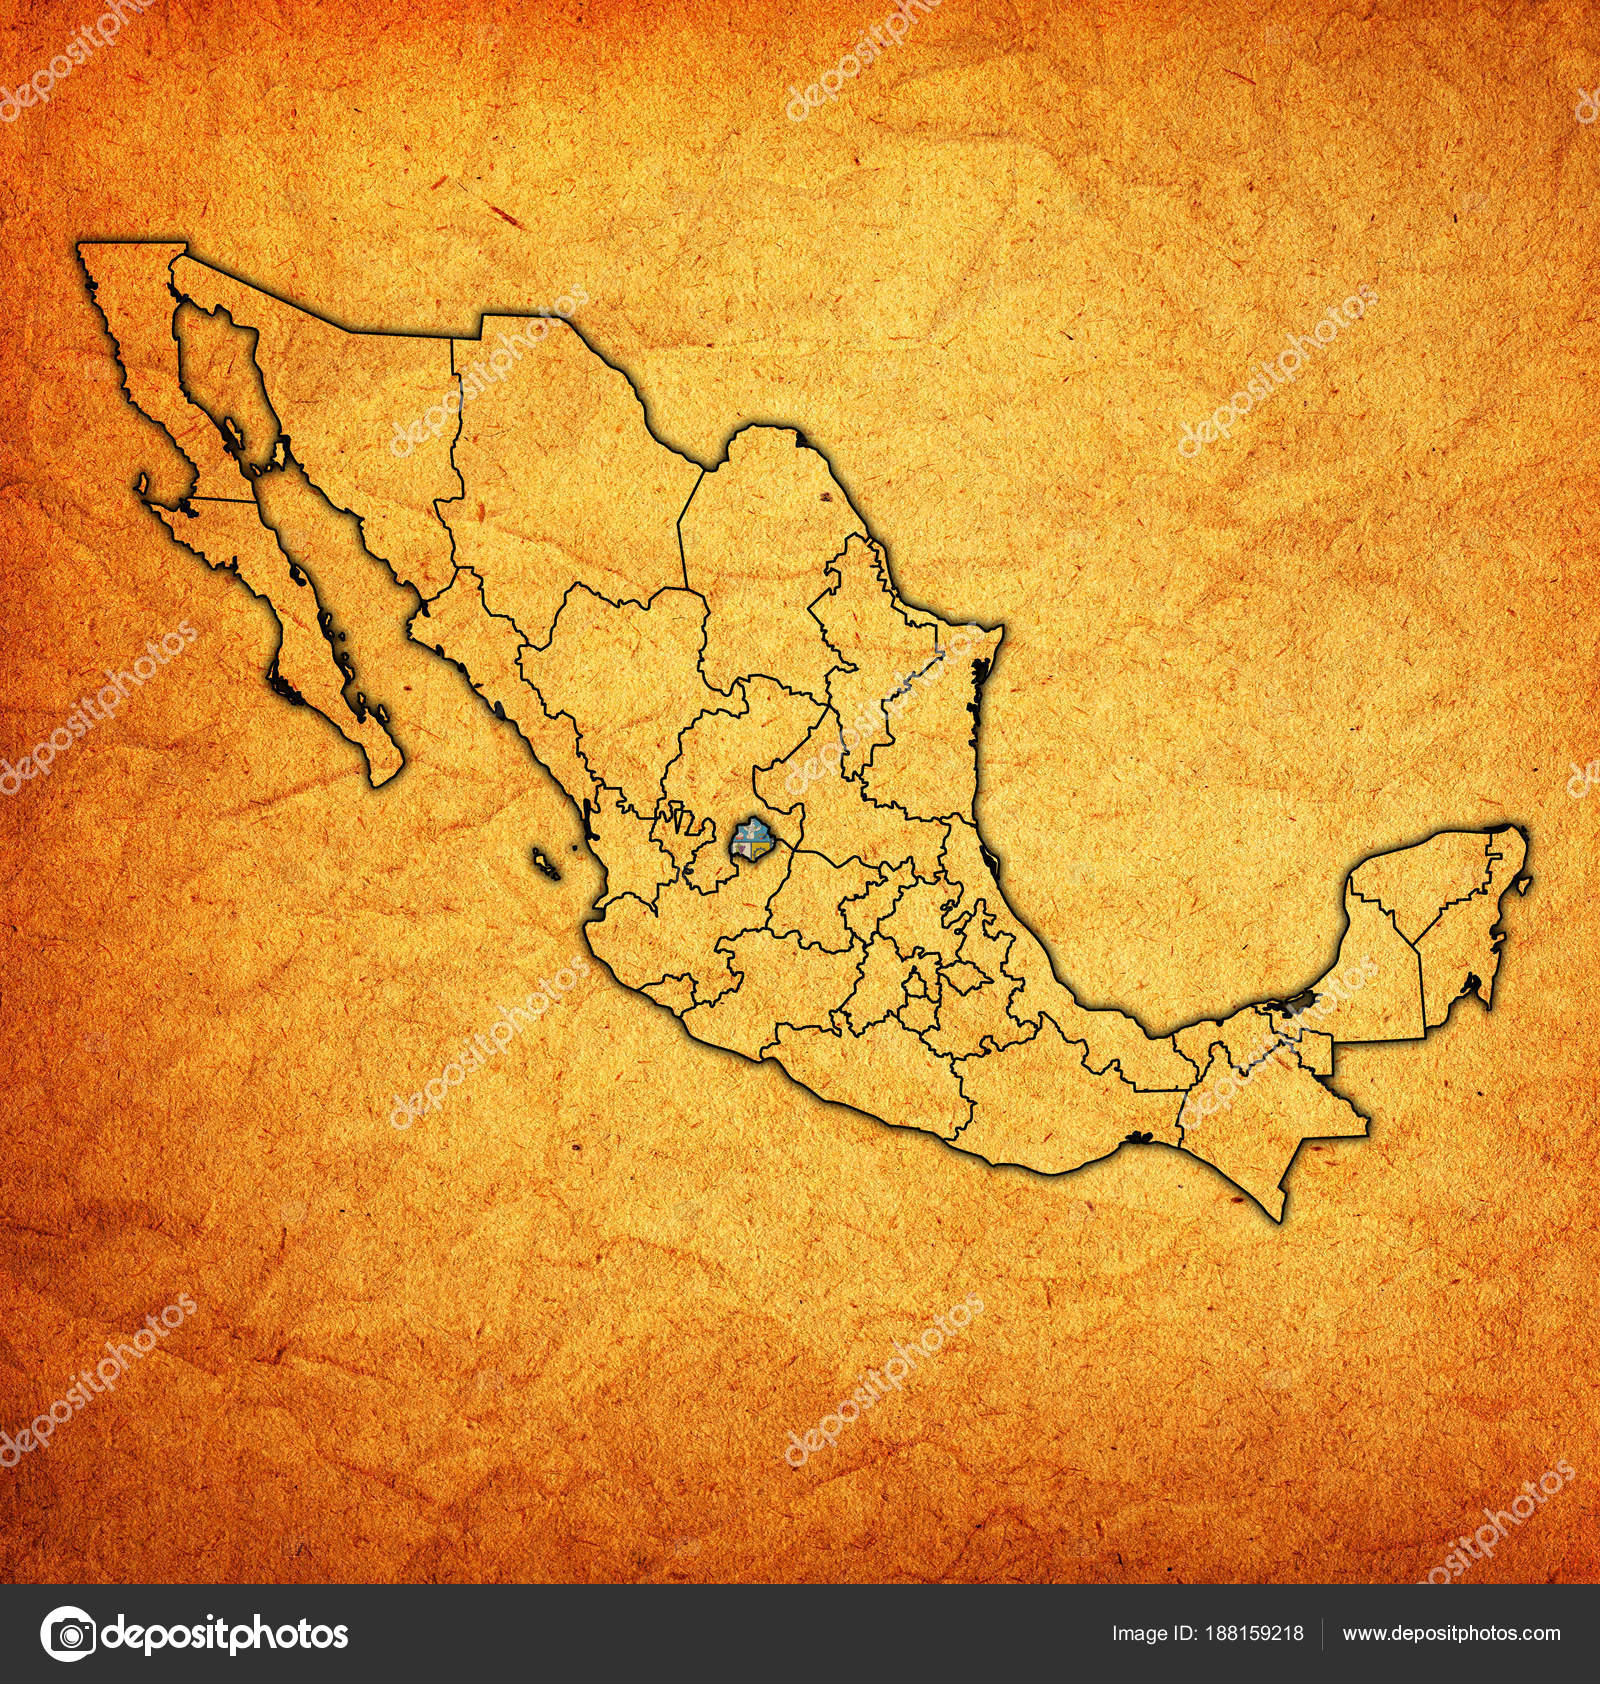 Aguascalientes on administration map of Mexico Stock Photo